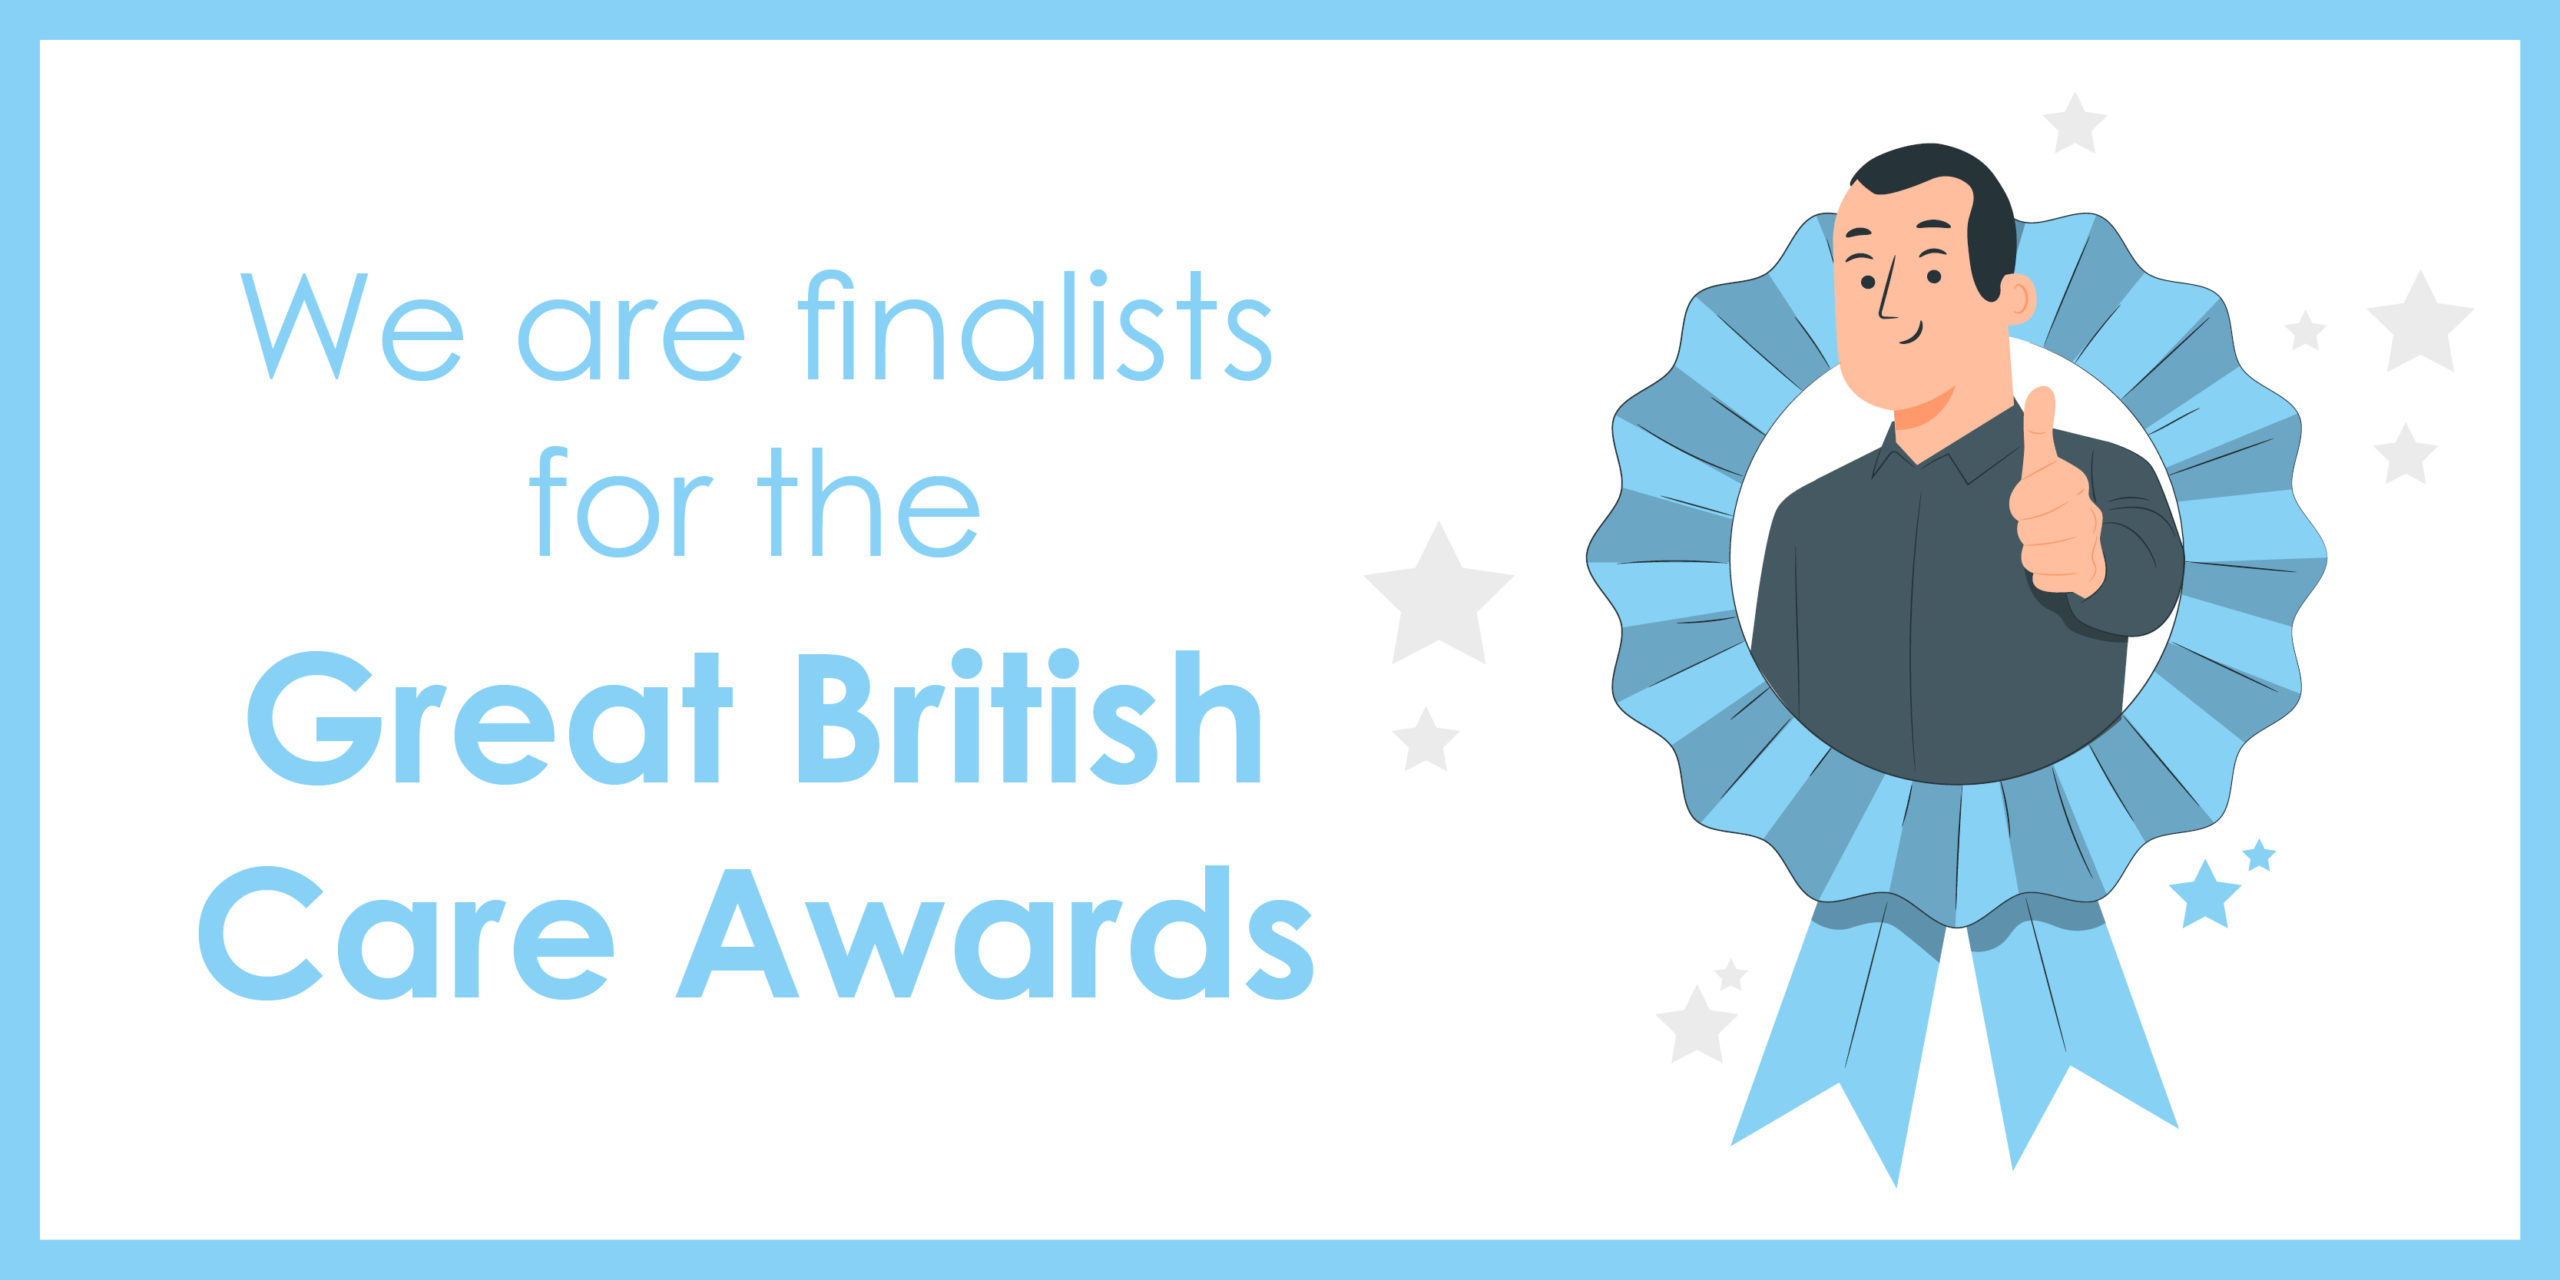 We are finalists for the Great British Care Awards!